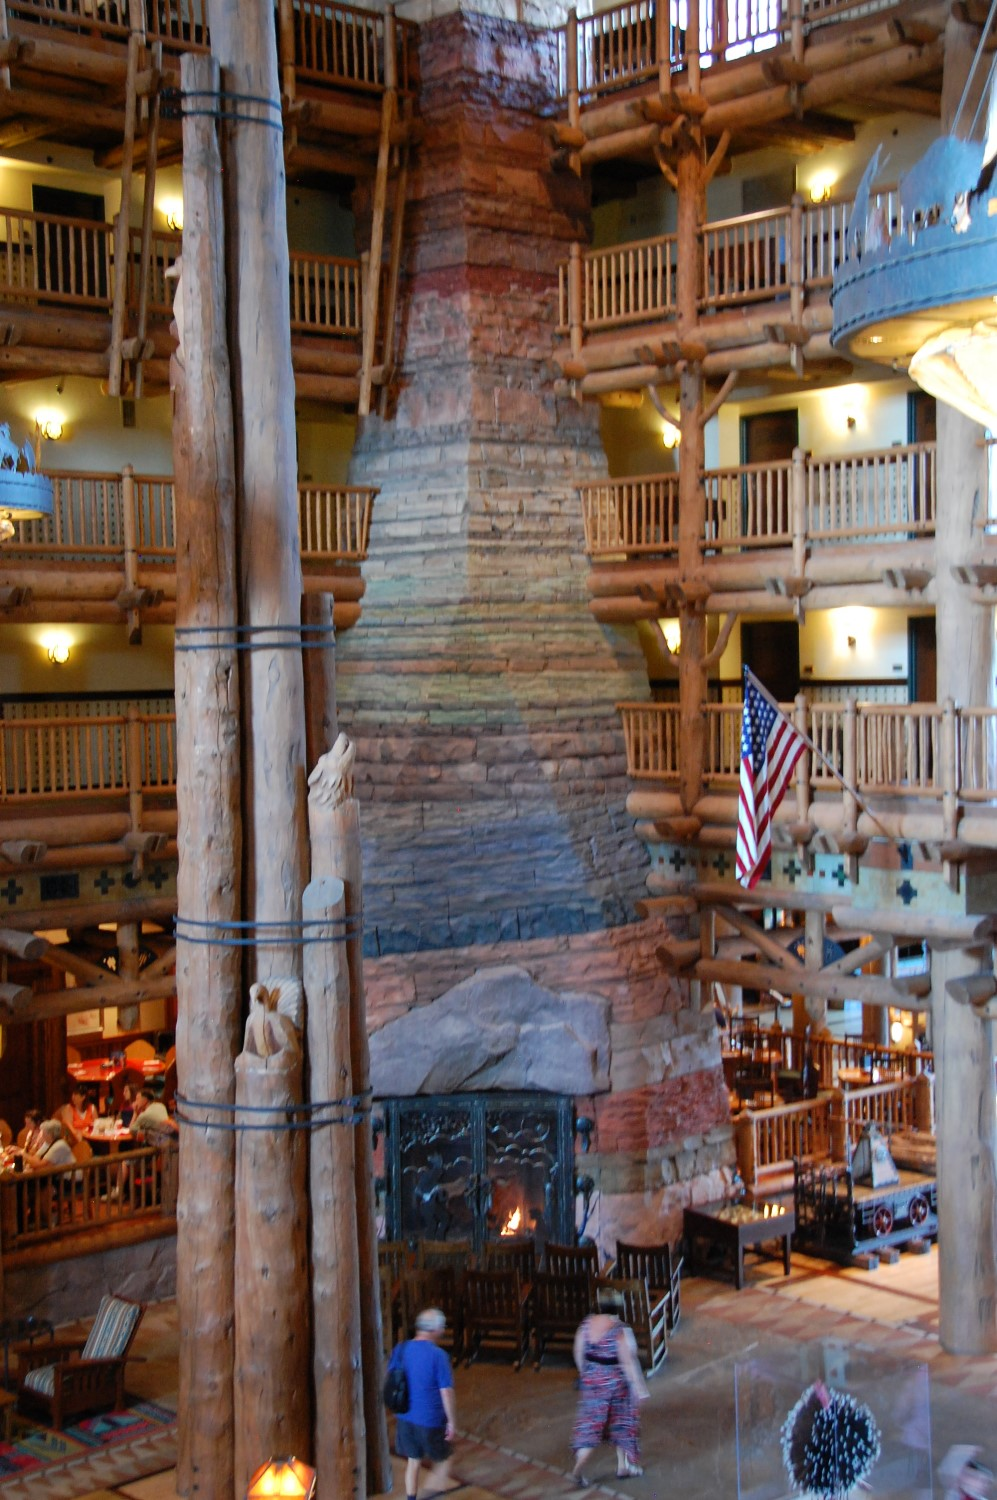 Grand Canyon Fireplace in the beatiful lobby of Disney's Wilderness Lodge.